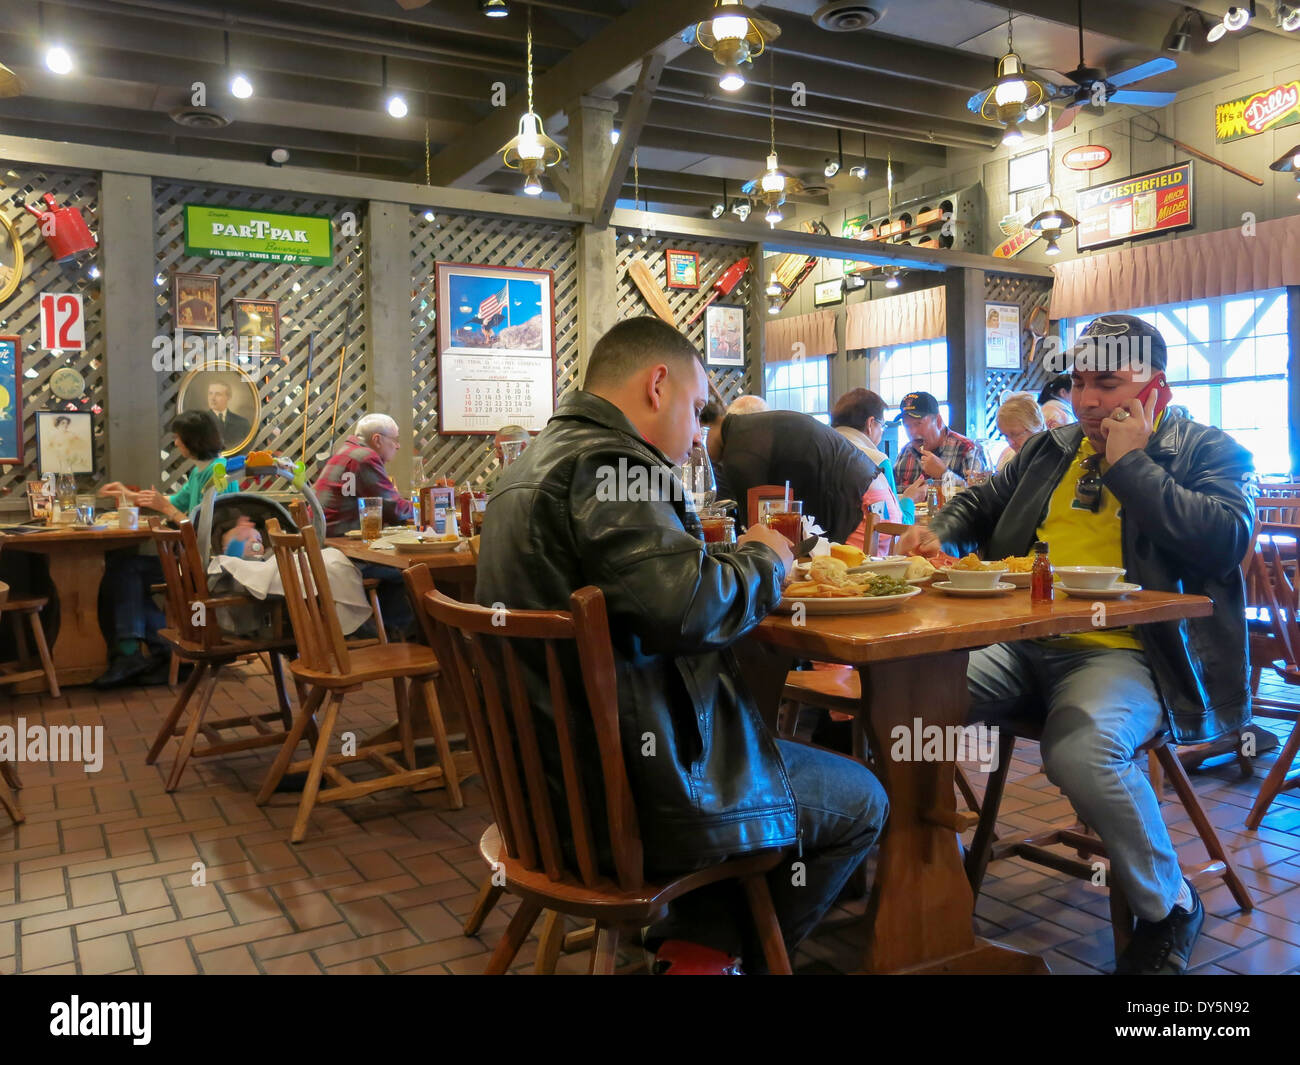 https www alamy com diners at tables main dining room cracker barrel old country store image68353294 html